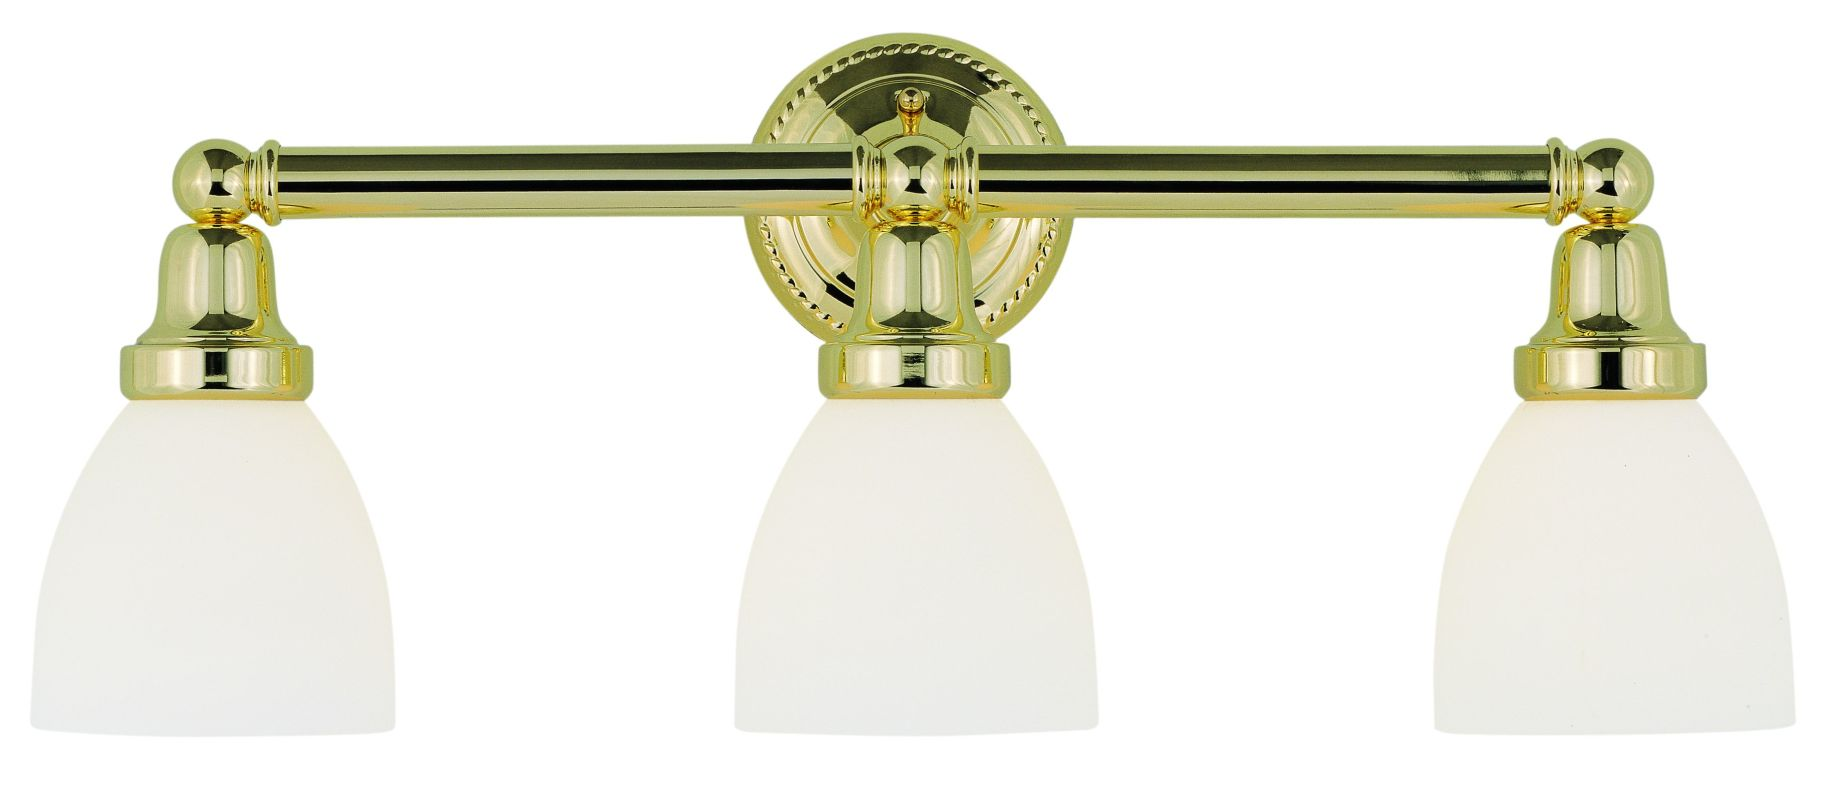 Livex Lighting 1023 02 Polished Brass Classic 3 Light Bathroom Vanity Light